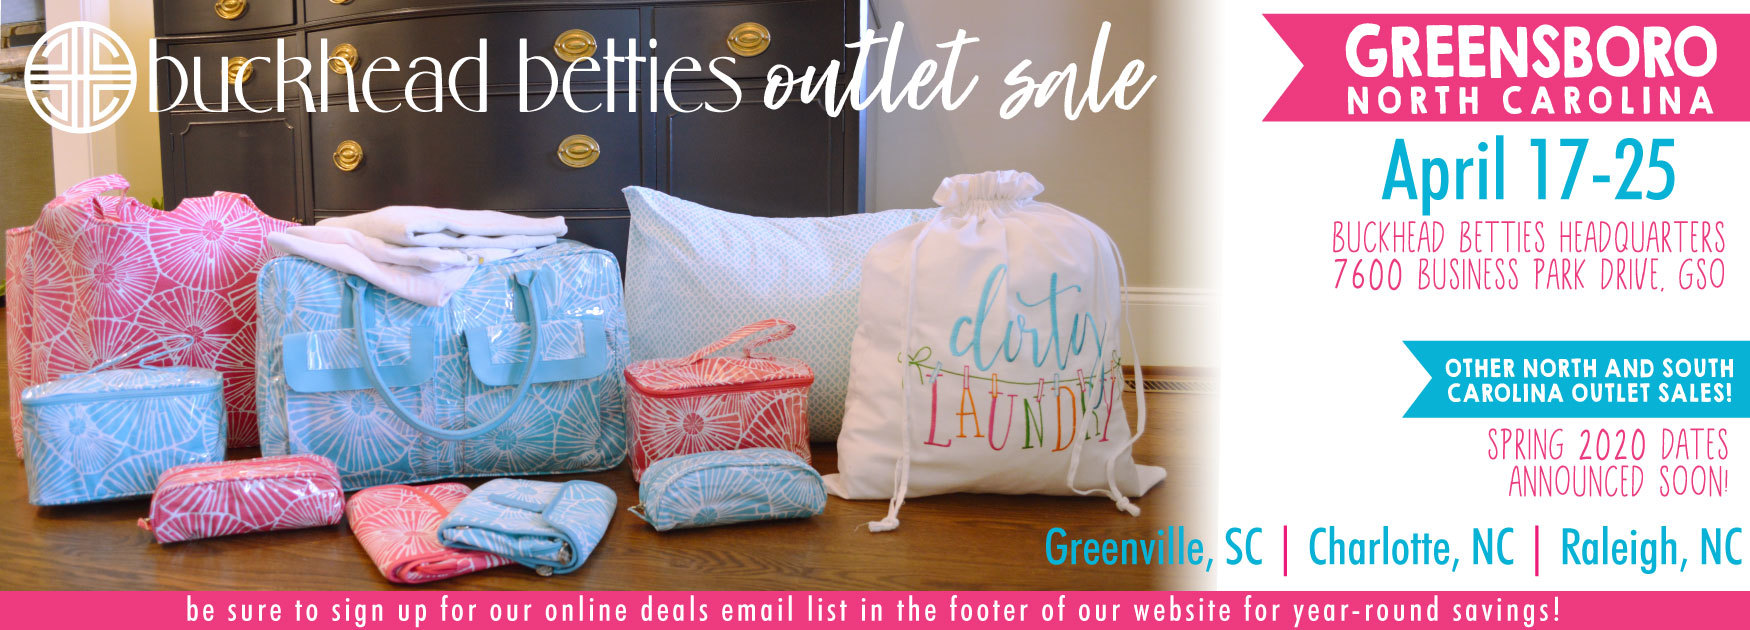 see you at our spring 2020 outlet sales